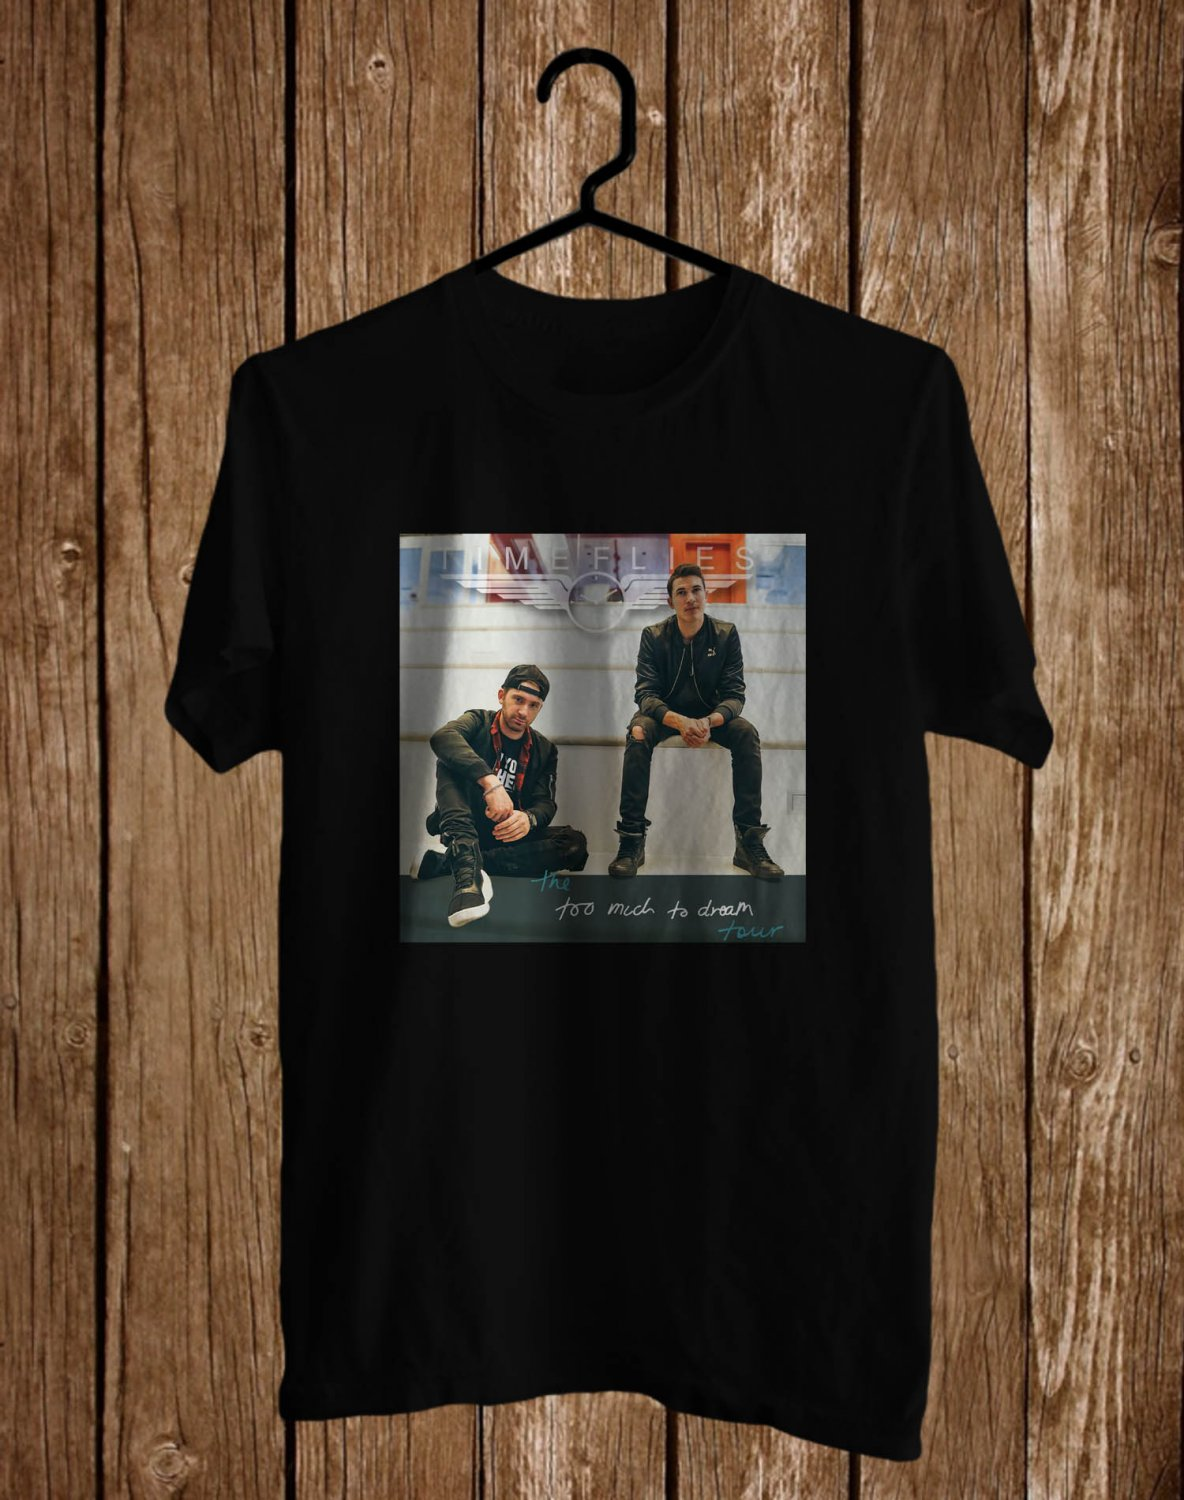 Timeflies Too Much Too Dream Logo Tour 2017 Black Tee's Front Side by Complexart z1